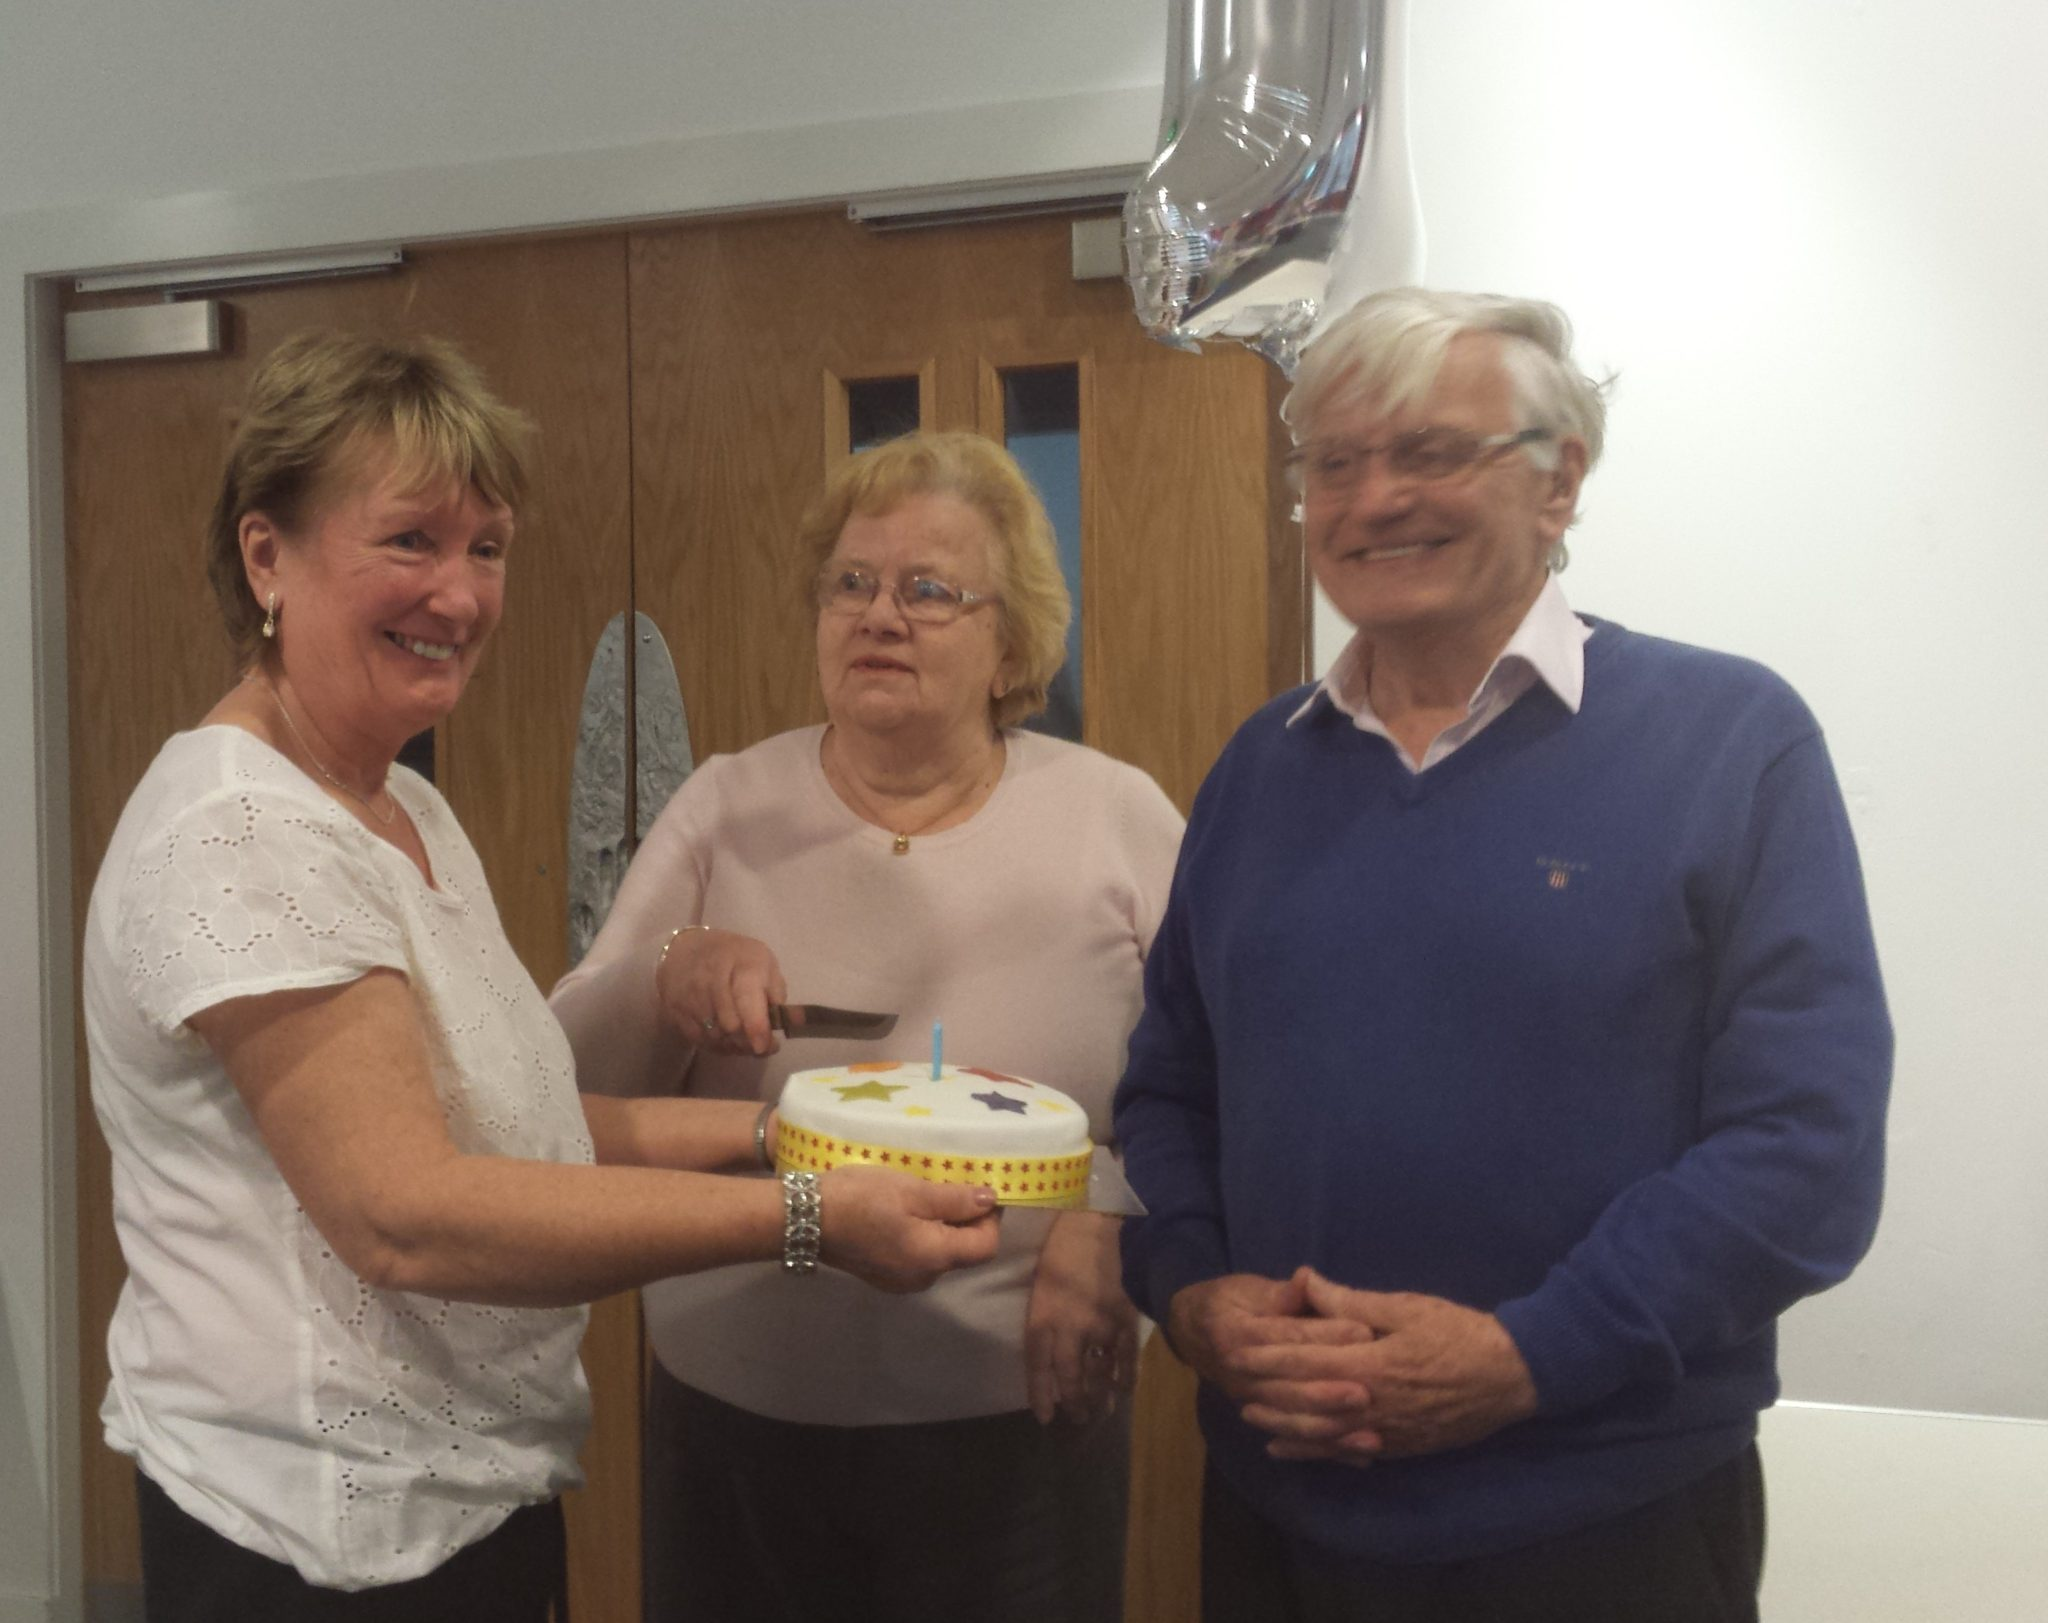 Sheila, Ian and Eileen cut the birthday cake